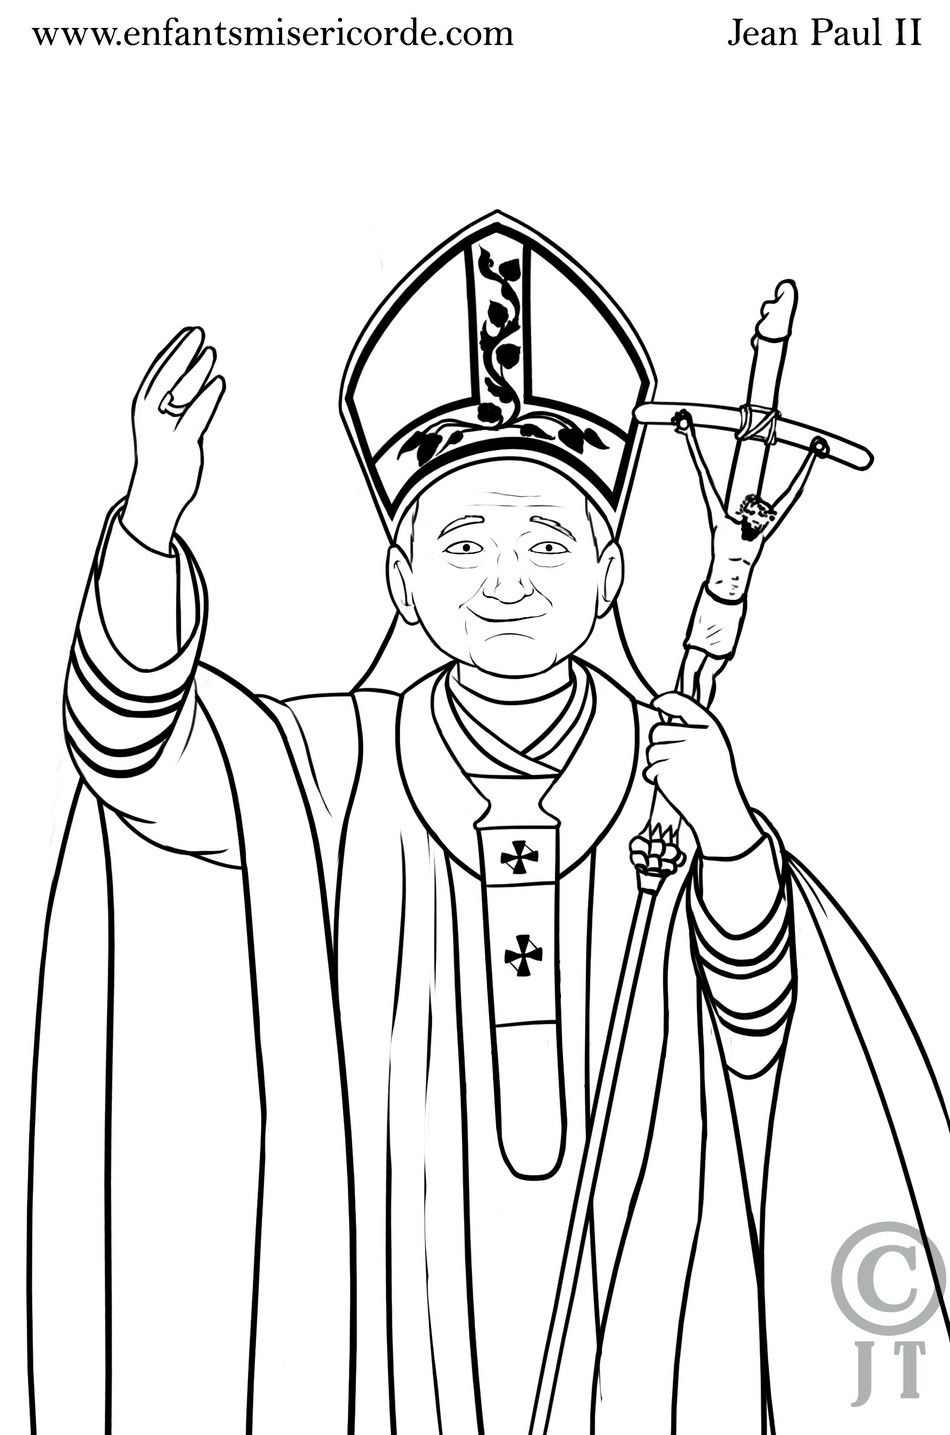 Coloriage Saint Jean-Paul II